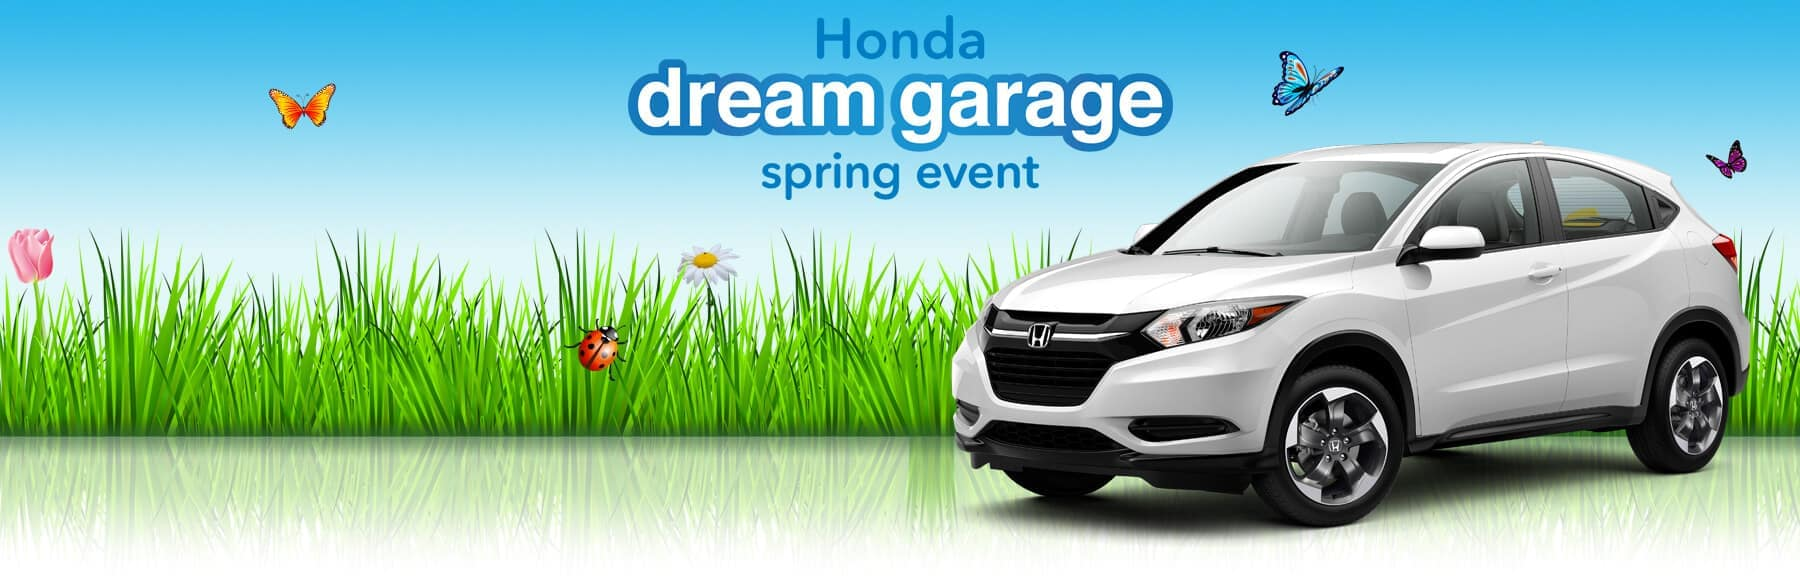 Honda Dream Garage Spring Event 2018 Honda HR-V